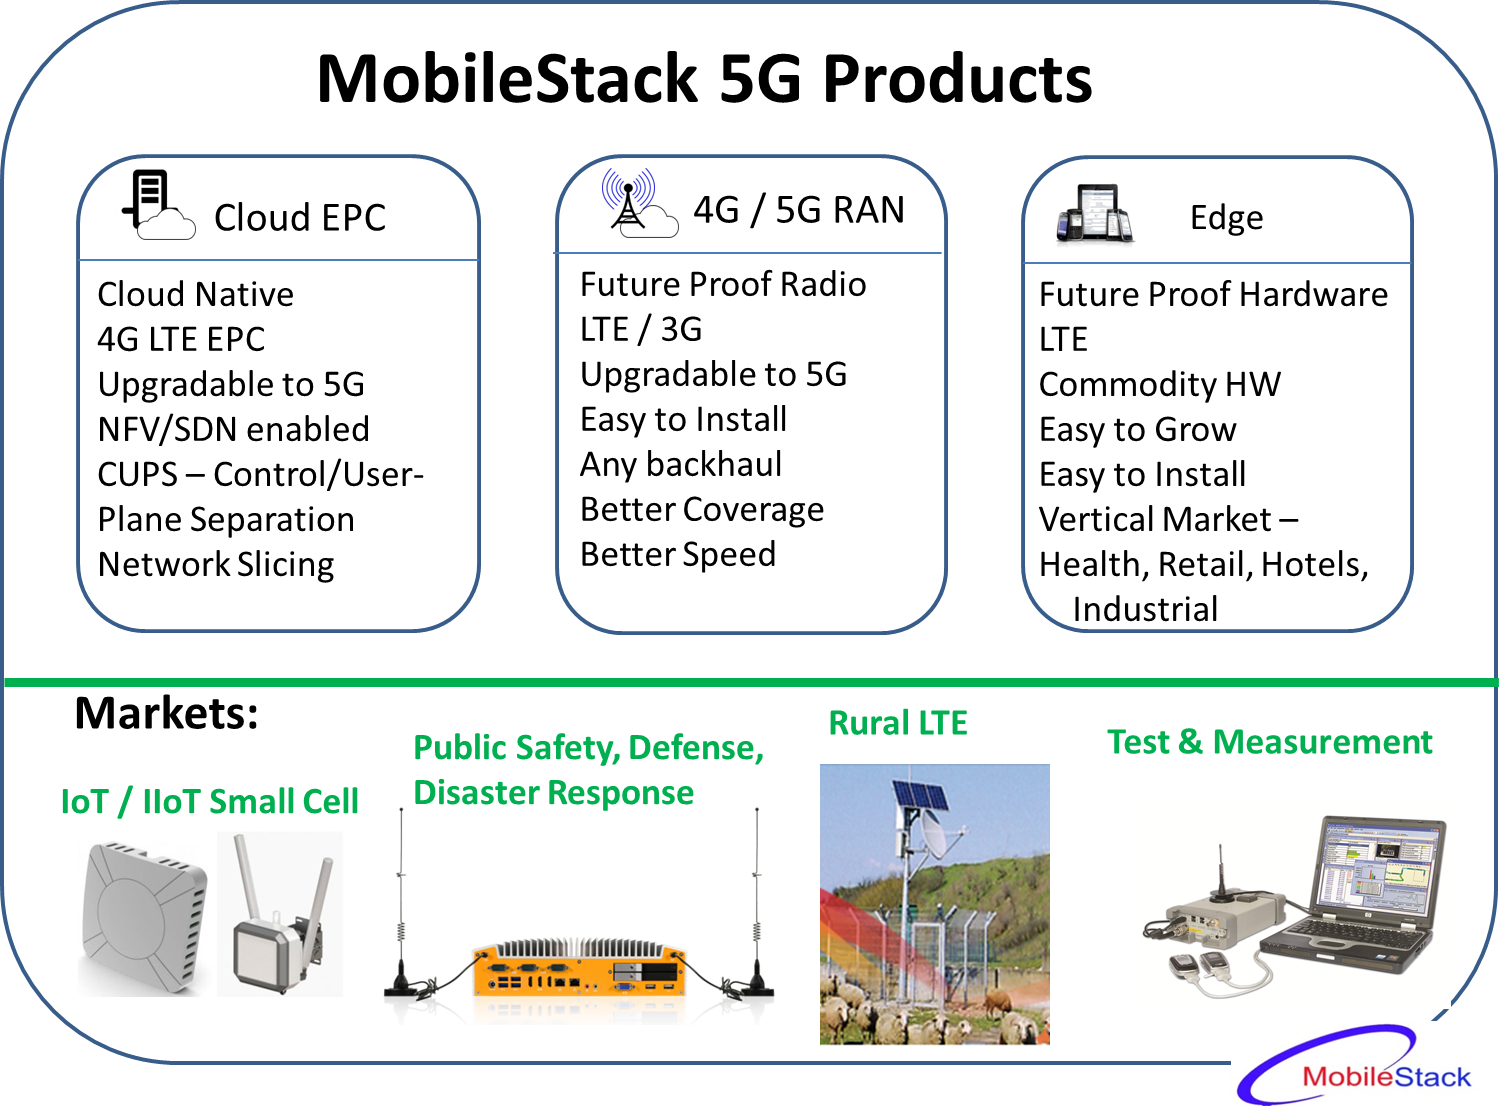 5G Products from Mobilestack Inc